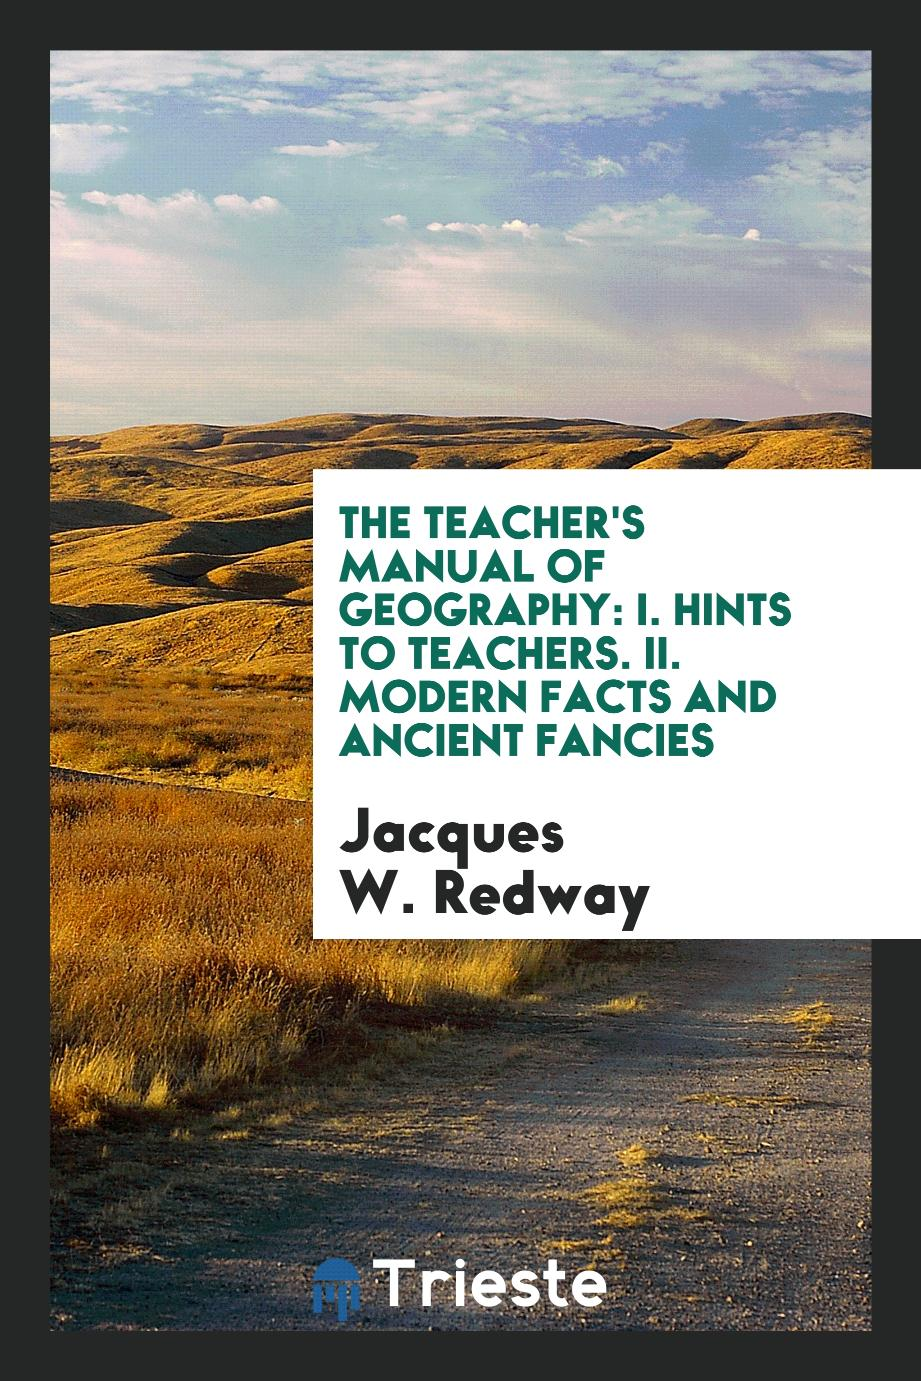 The Teacher's Manual of Geography: I. Hints to Teachers. II. Modern Facts and Ancient Fancies